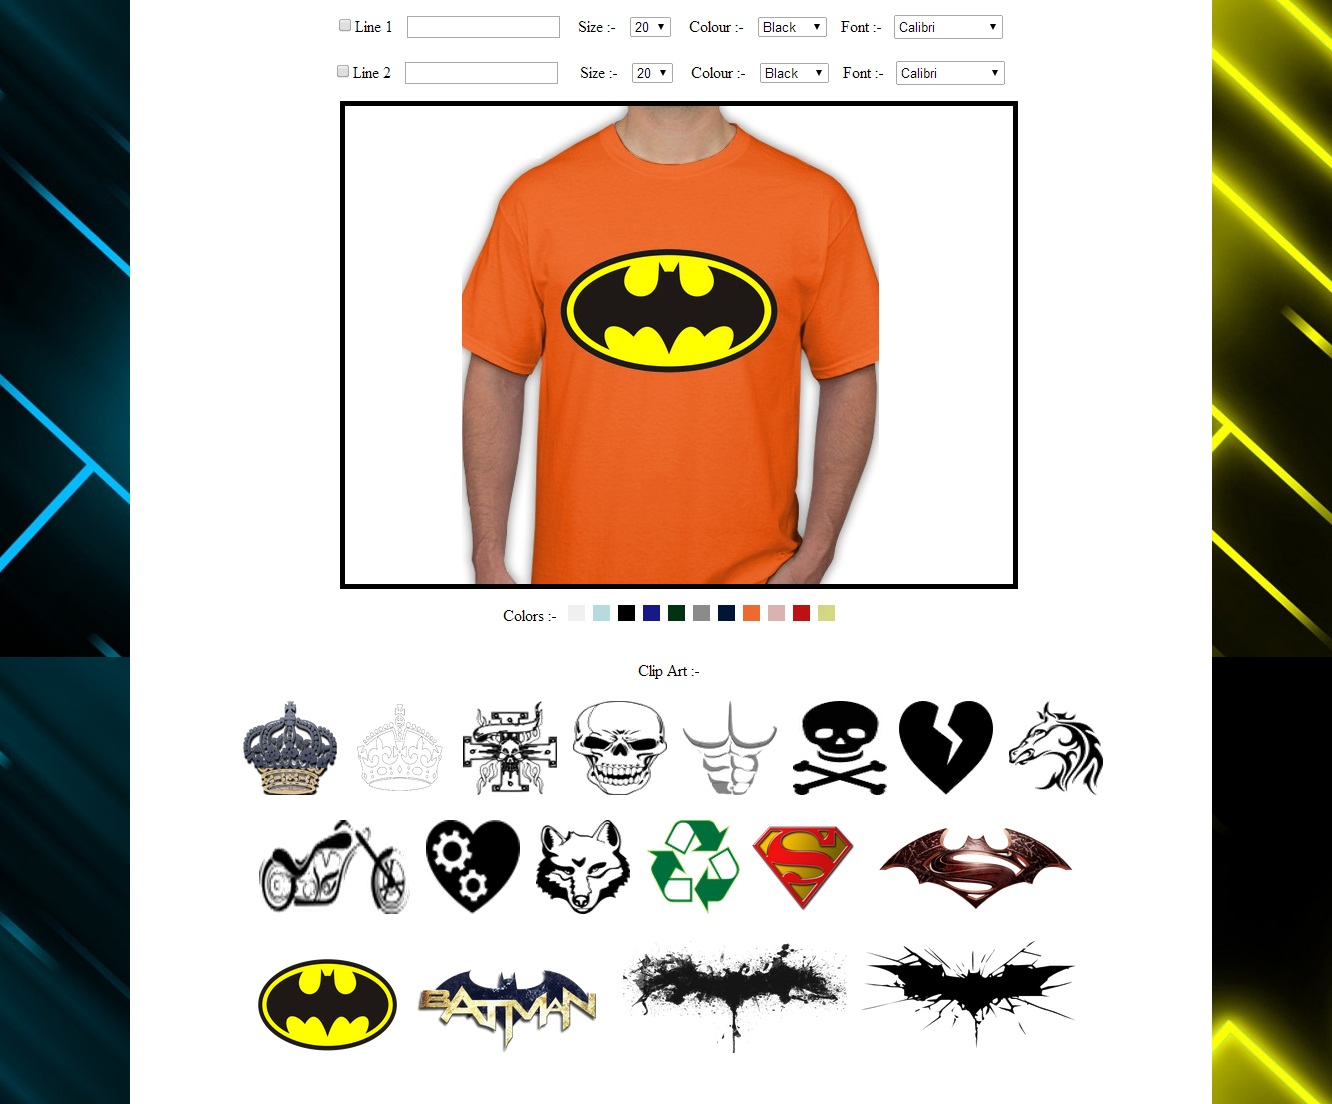 Online Printed T-Shirt Designing Project